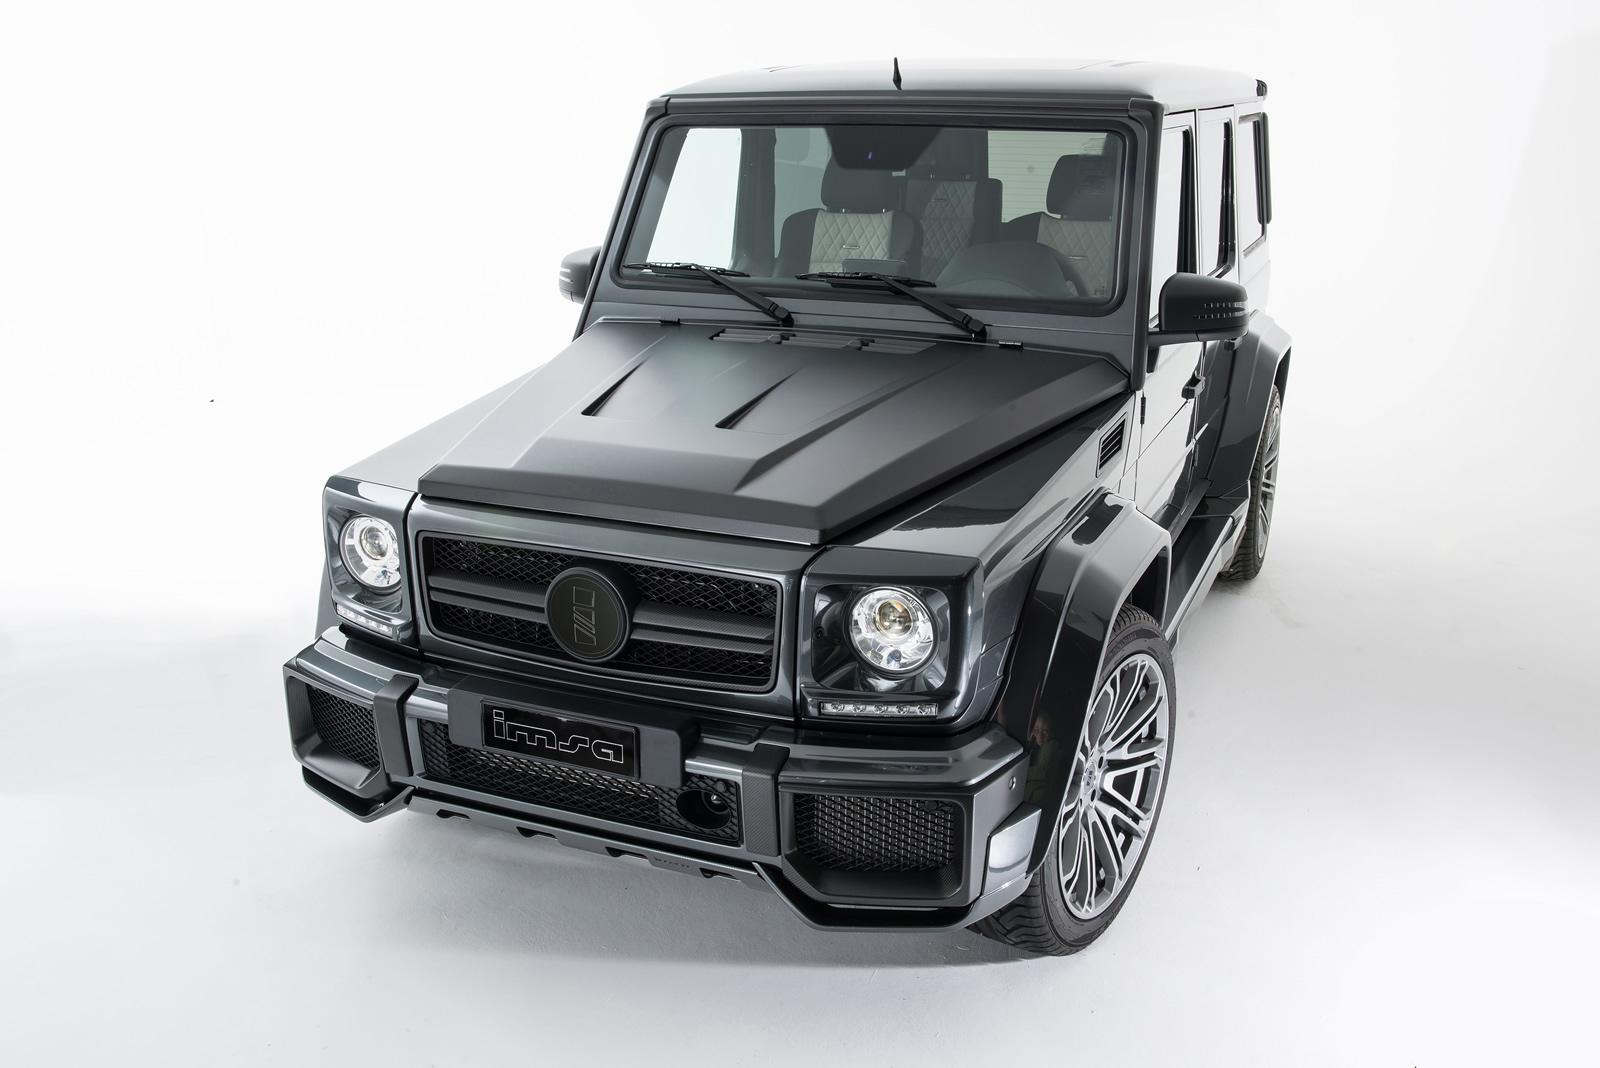 mercedes g63 amg tuned to 730 hp by imsa autoevolution. Black Bedroom Furniture Sets. Home Design Ideas